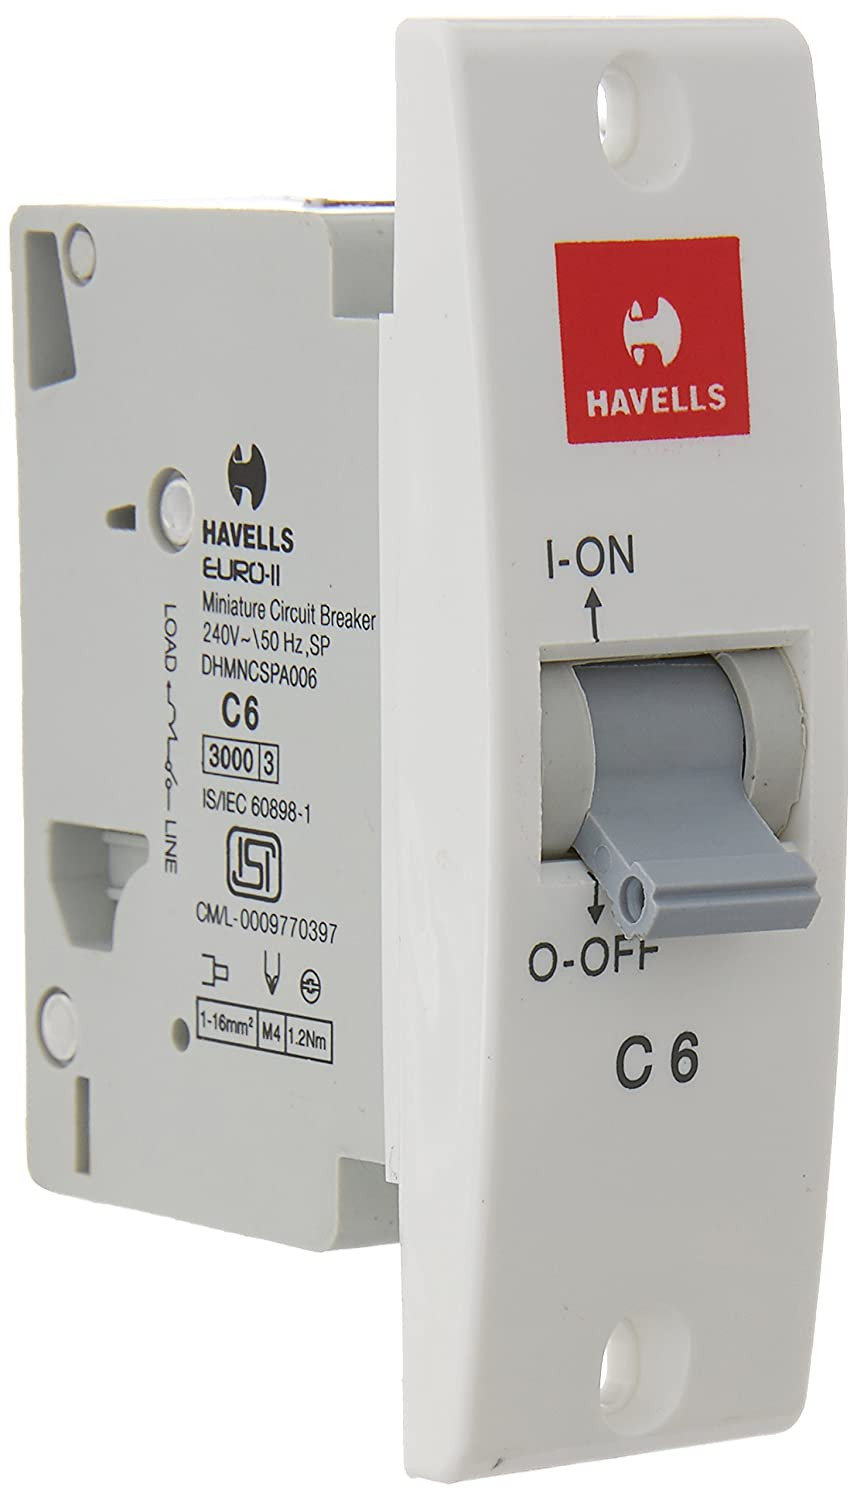 Buy Havells Dhmncspa006 Pvc Plastic 6a Sp C Mini Mcb White Online Breakers Load Centers Fuses Circuit Miniature At Low Prices In India